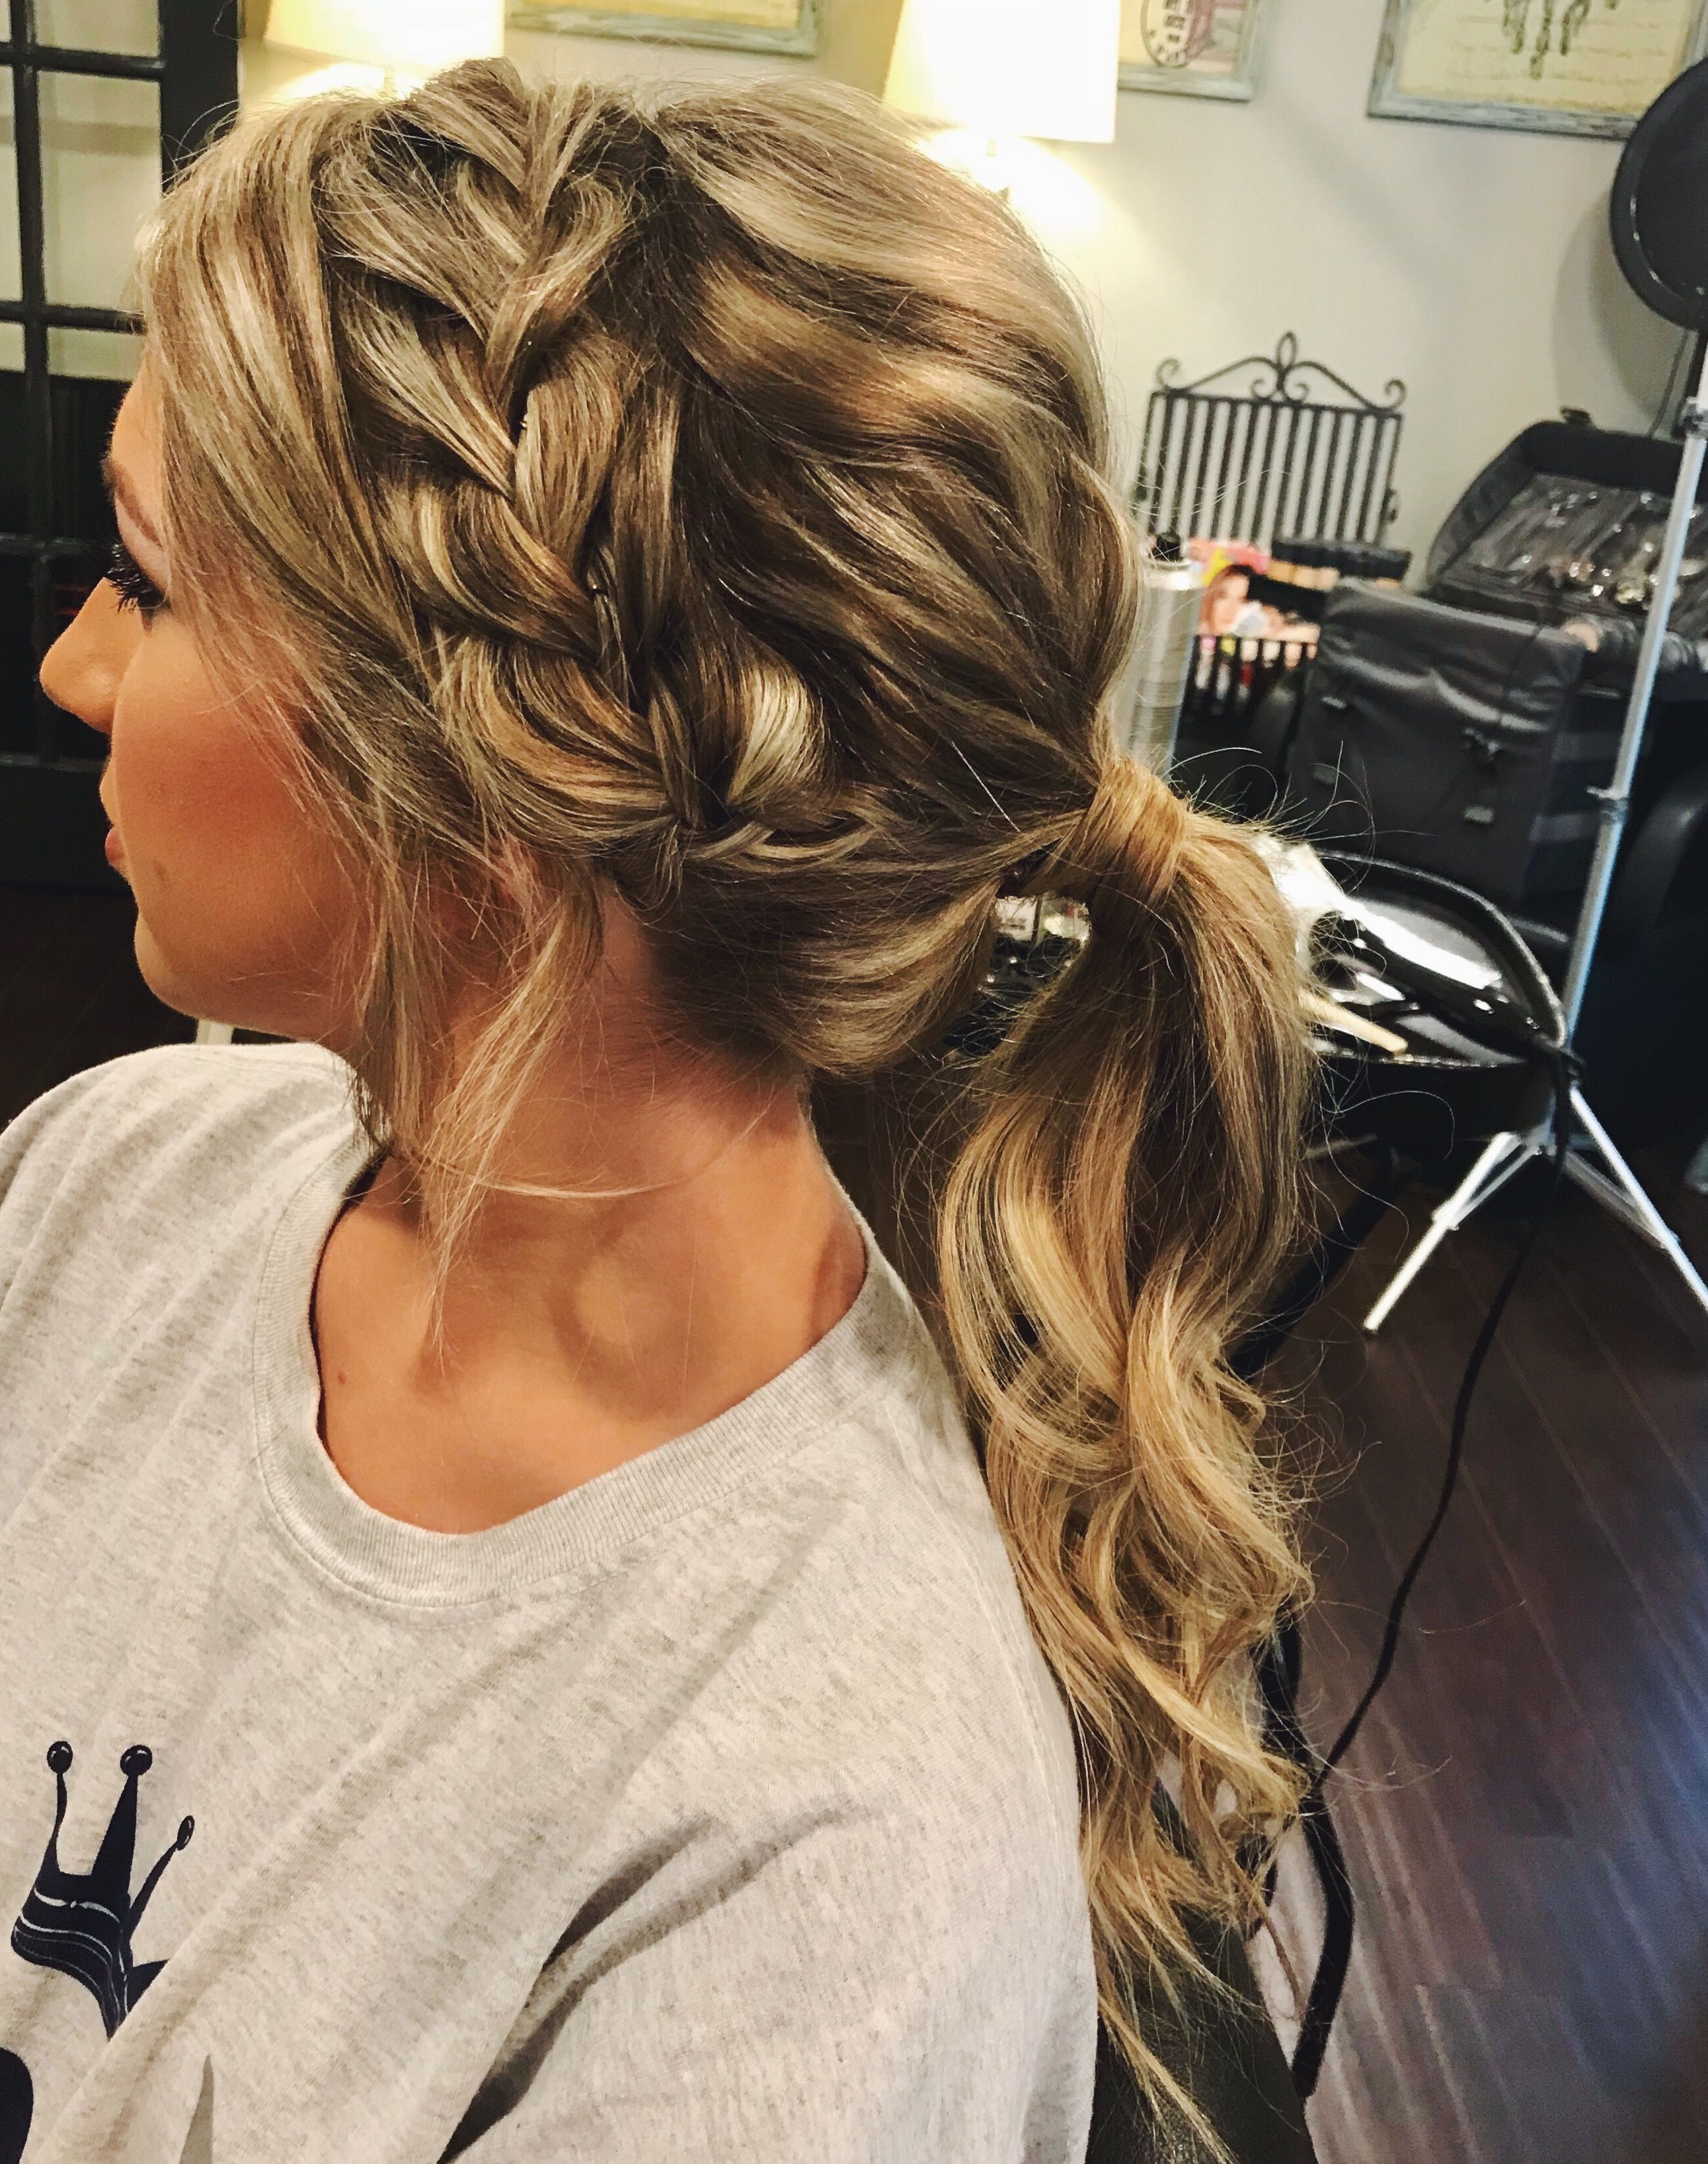 prom hair - ponytail updo braid | hair in 2019 | prom